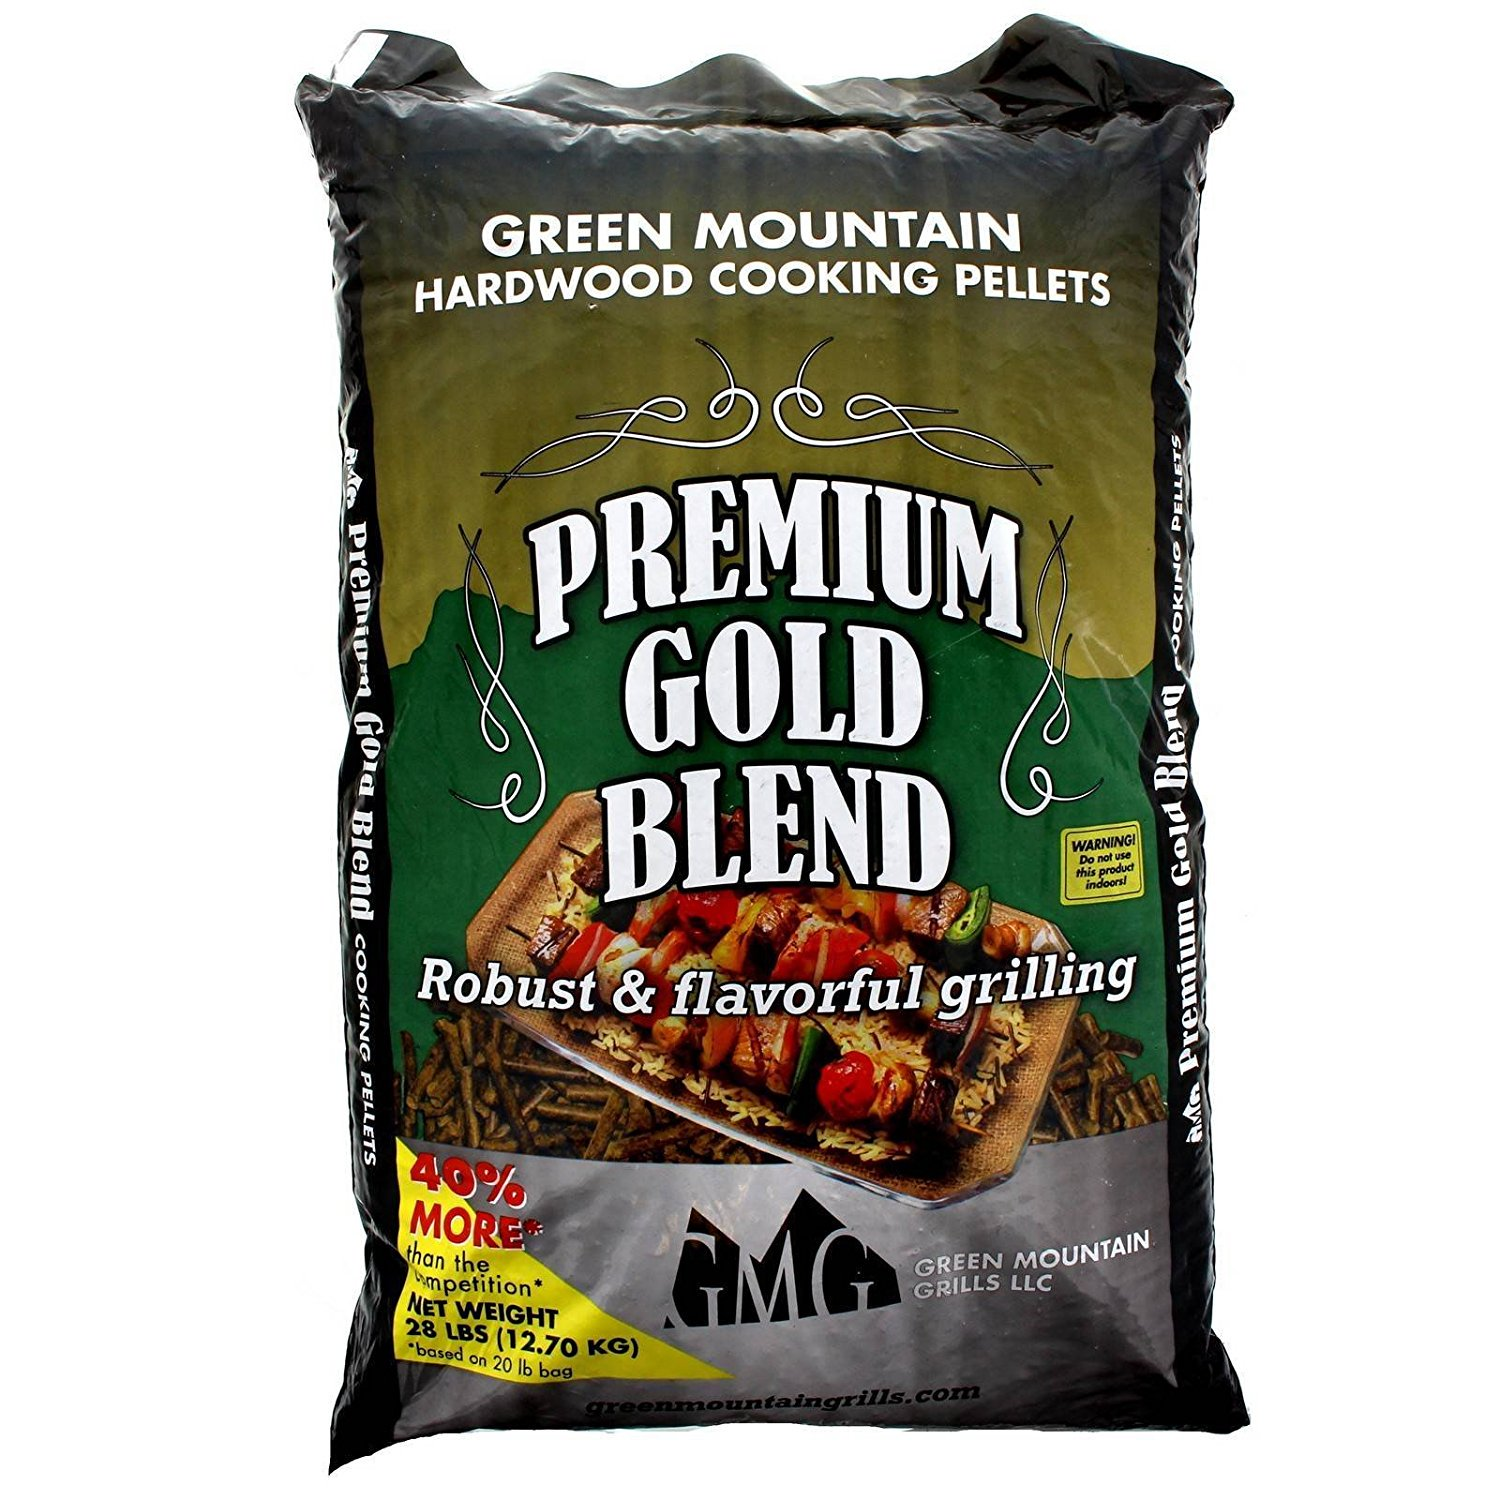 Green Mountain Grills Premium Gold Blend Pure Hardwood Grilling Cooking Pellets